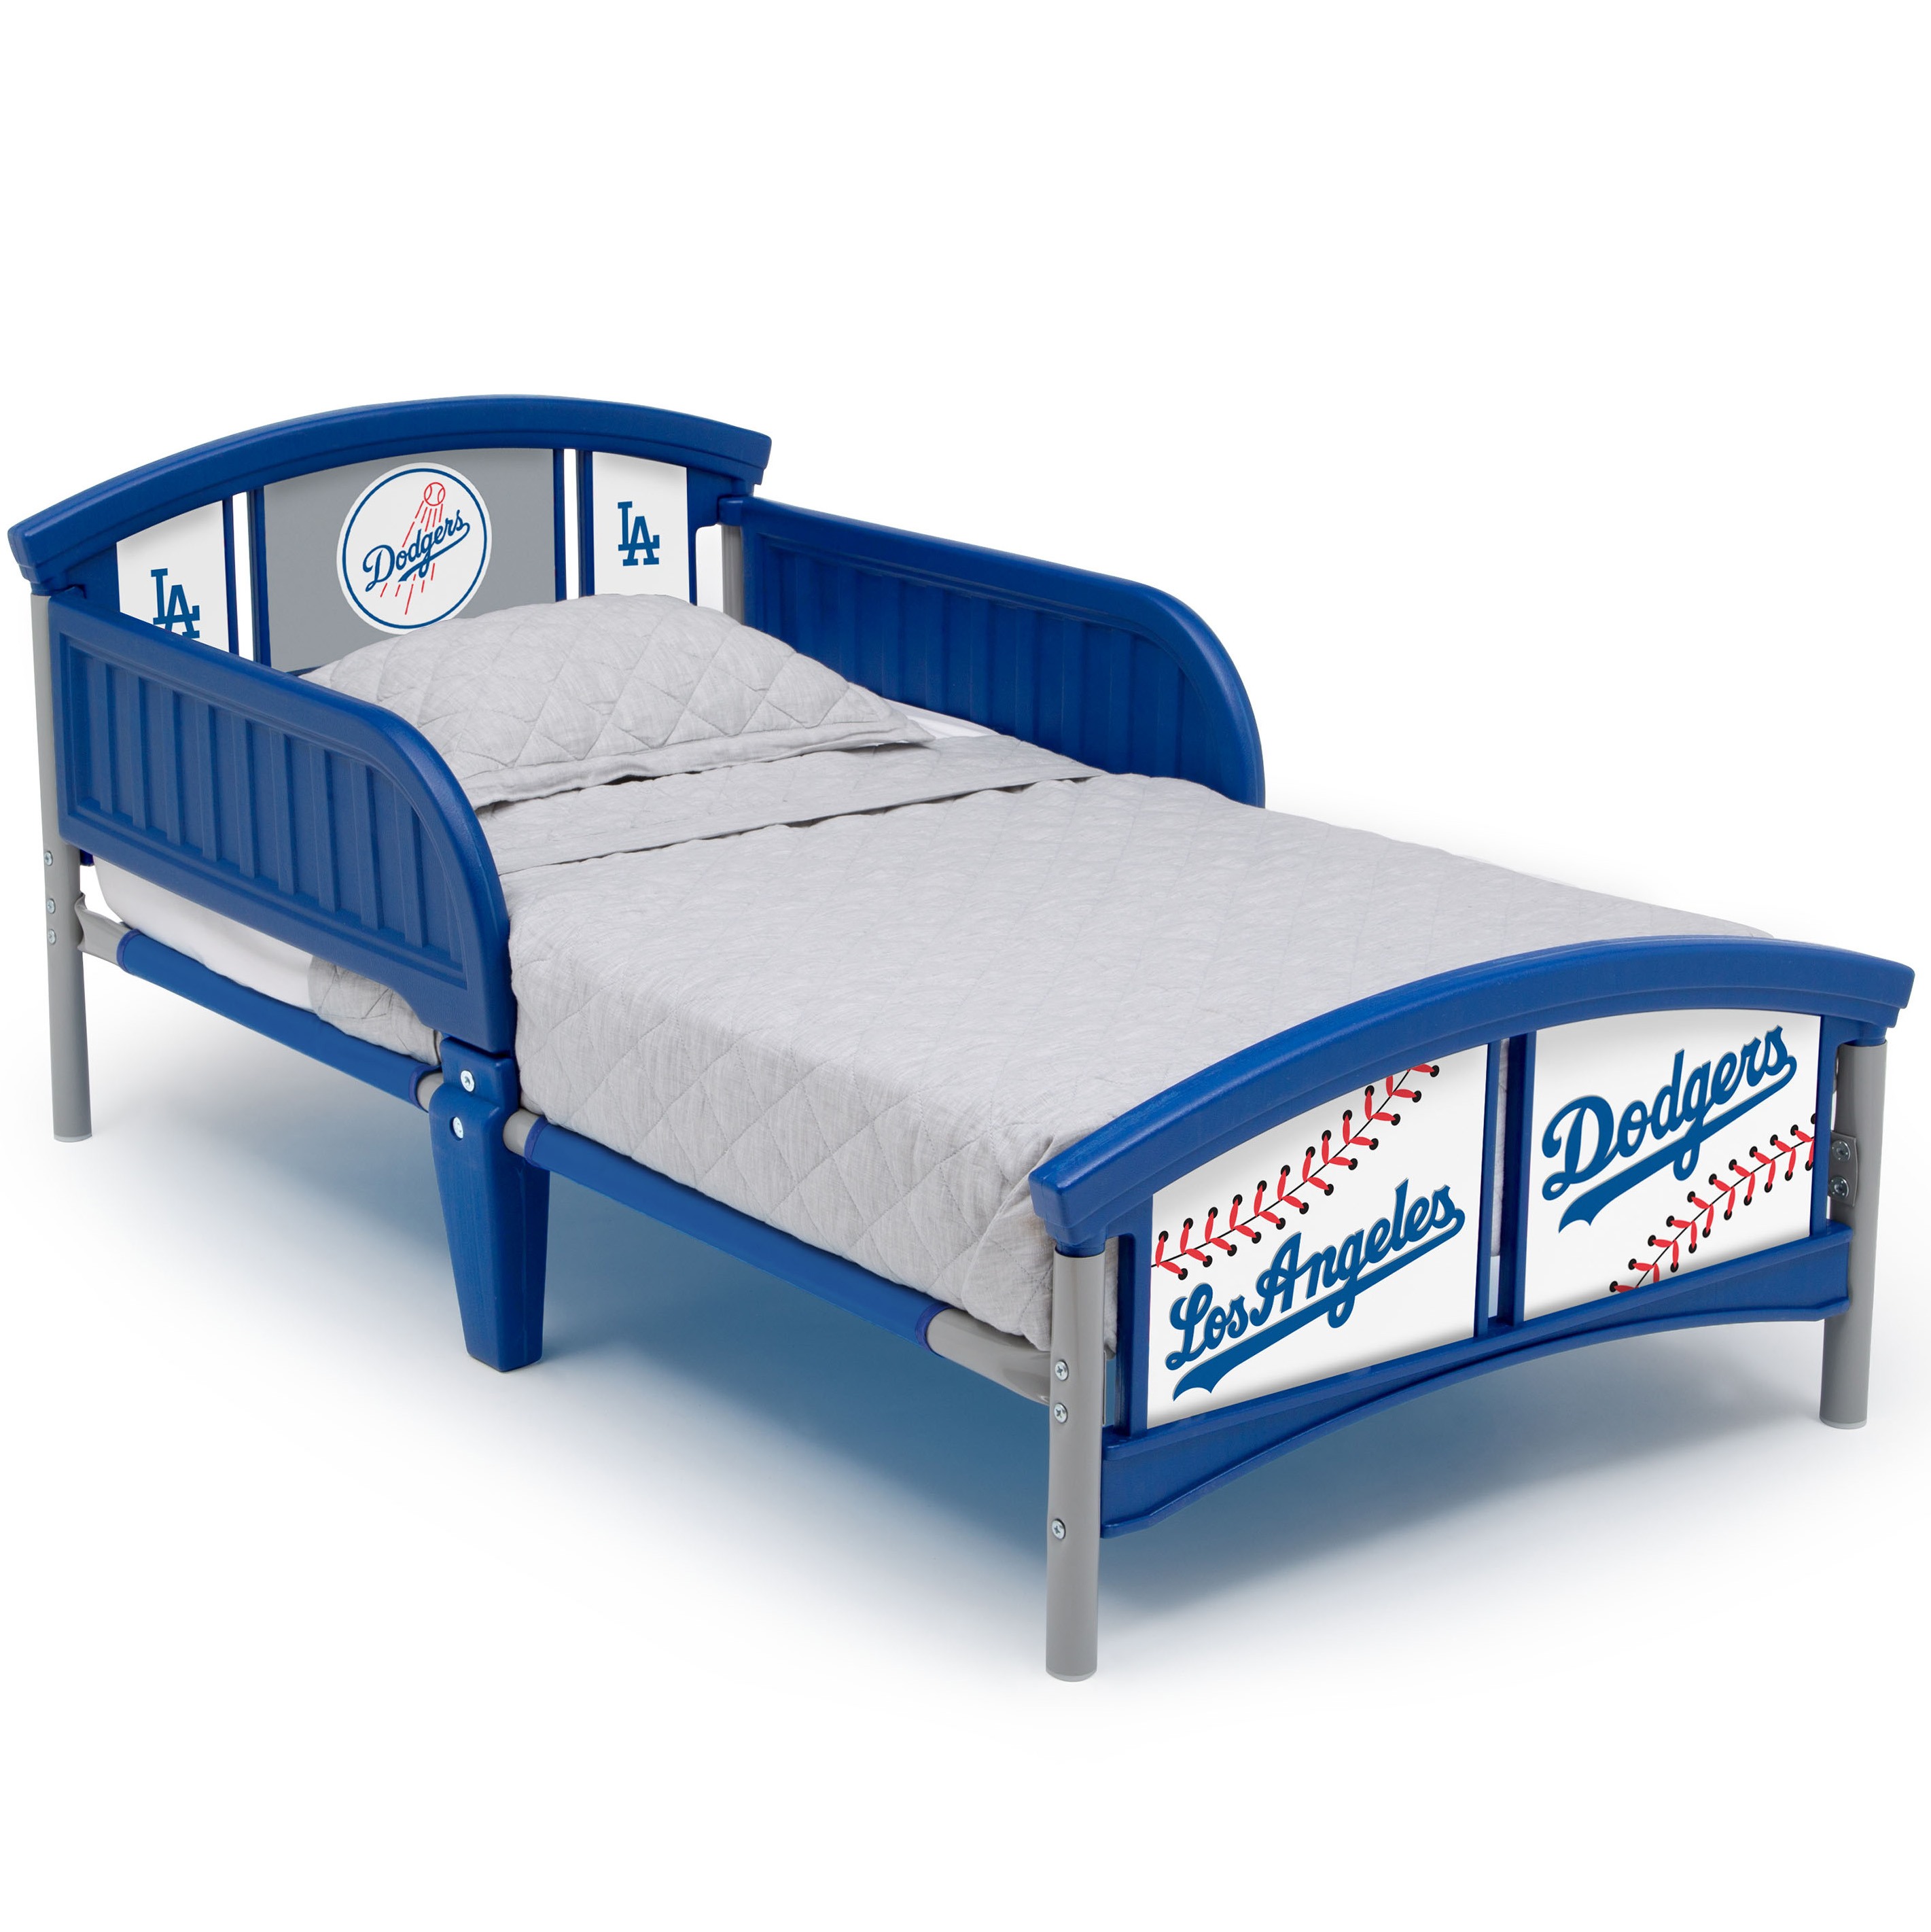 MLB Los Angeles Dodgers Plastic Toddler Bed by Delta Children